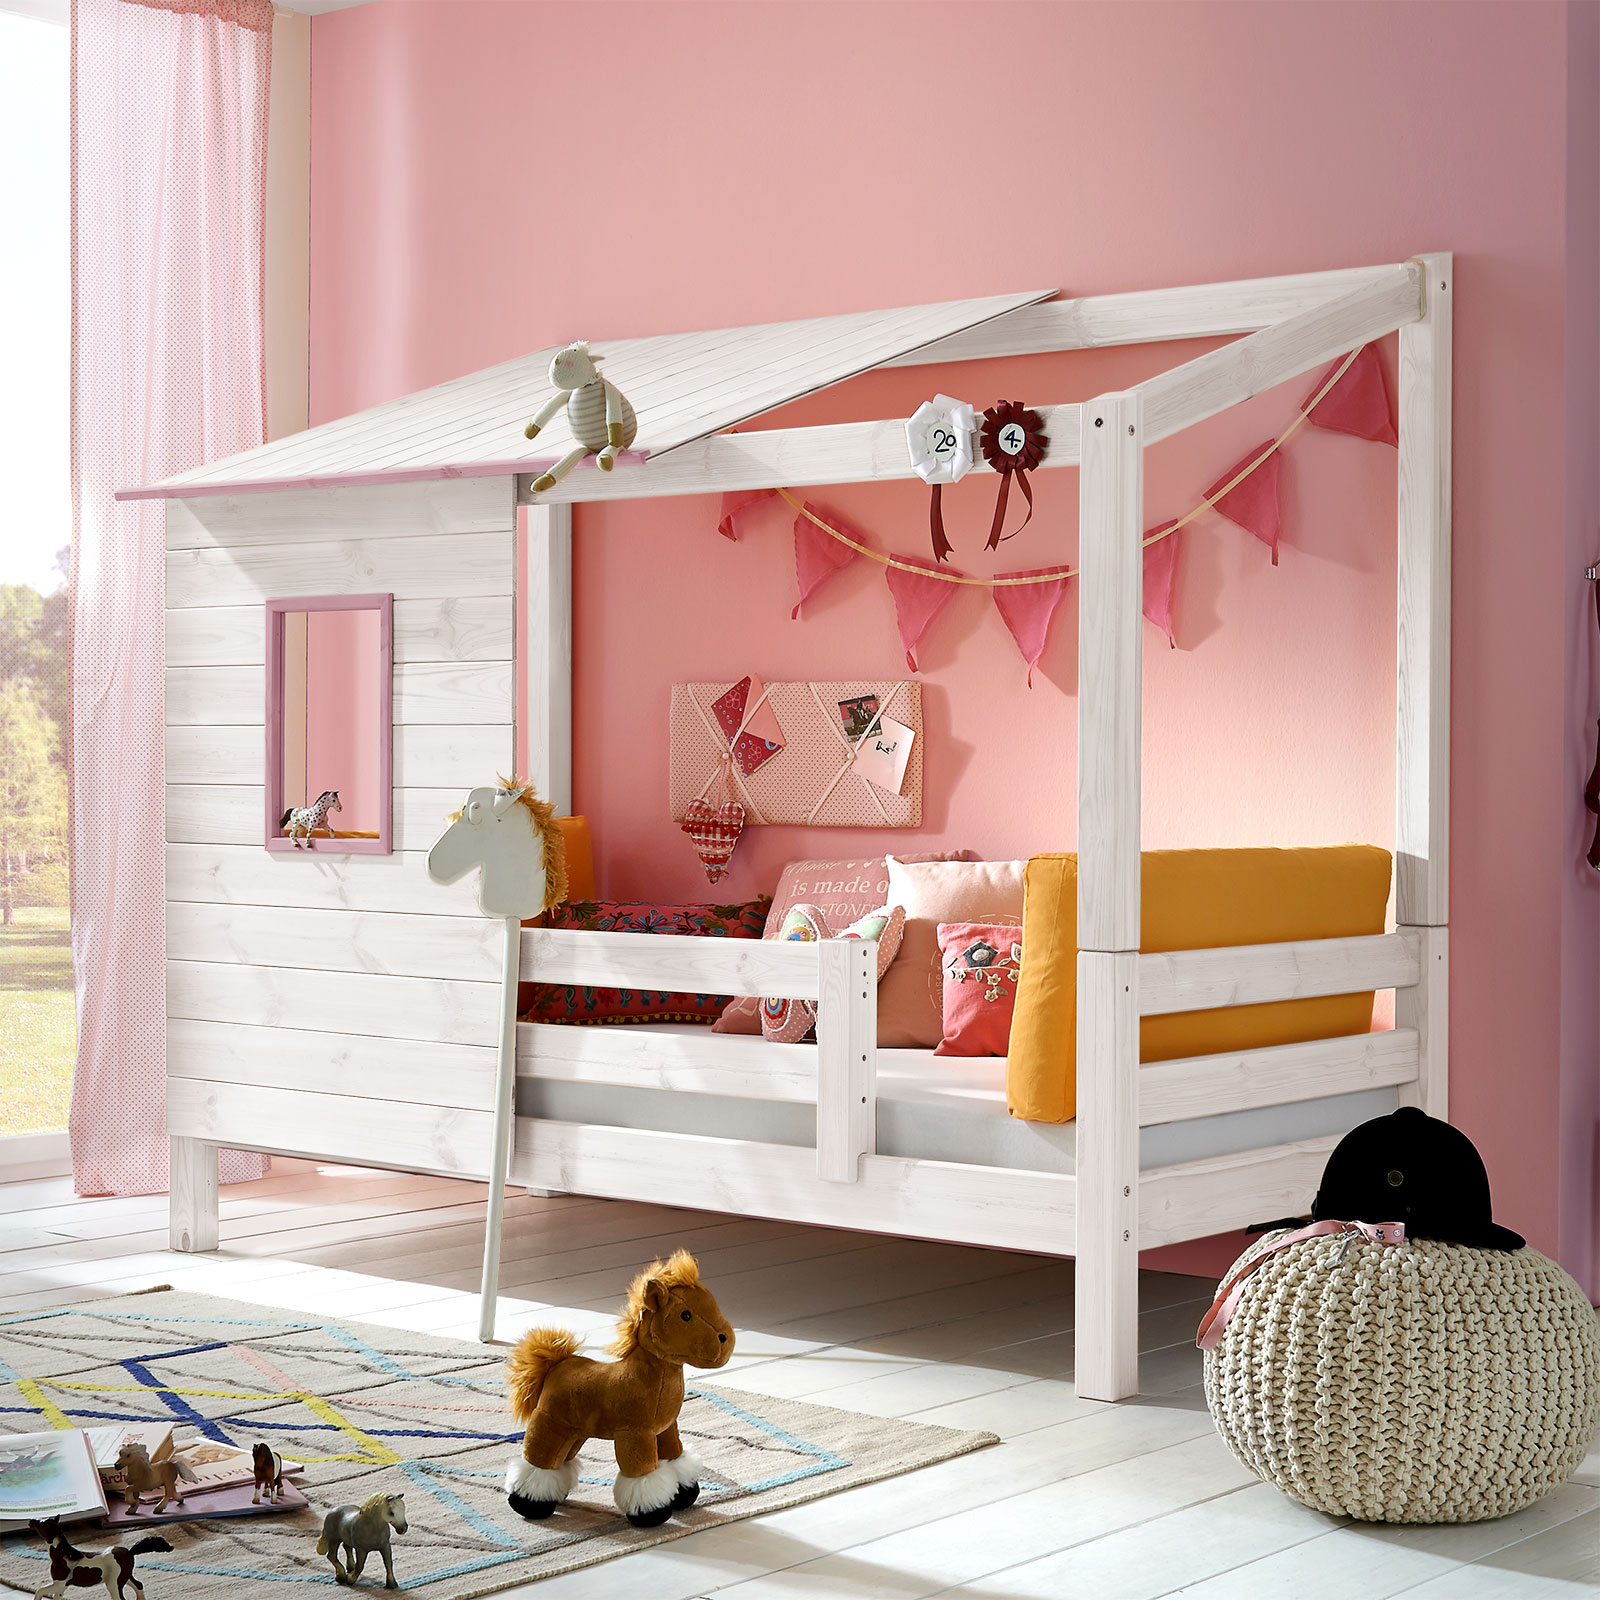 abenteuerbett aus massivholz f r m dchen kids paradise. Black Bedroom Furniture Sets. Home Design Ideas